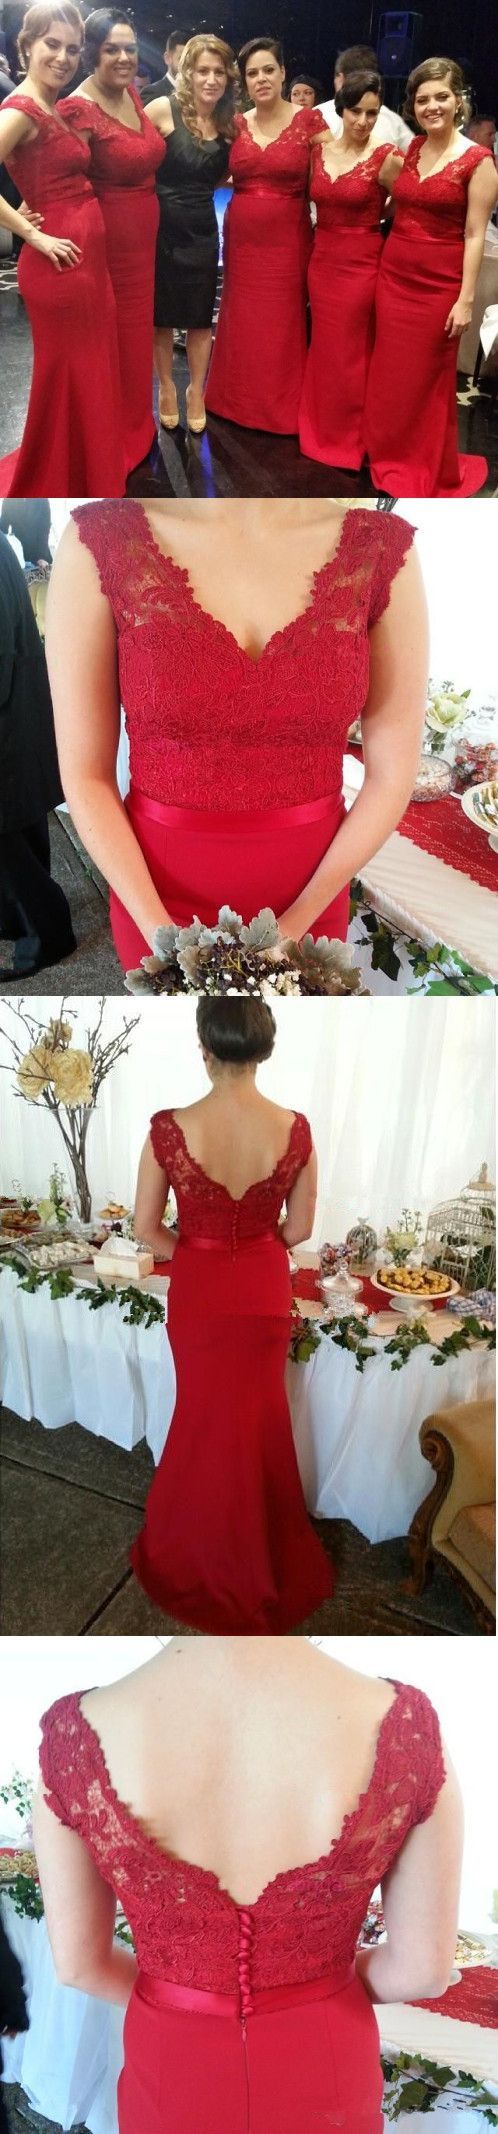 Red Mermaid Bridesmaid Dress with Lace,Long Bridesmaid Dresses